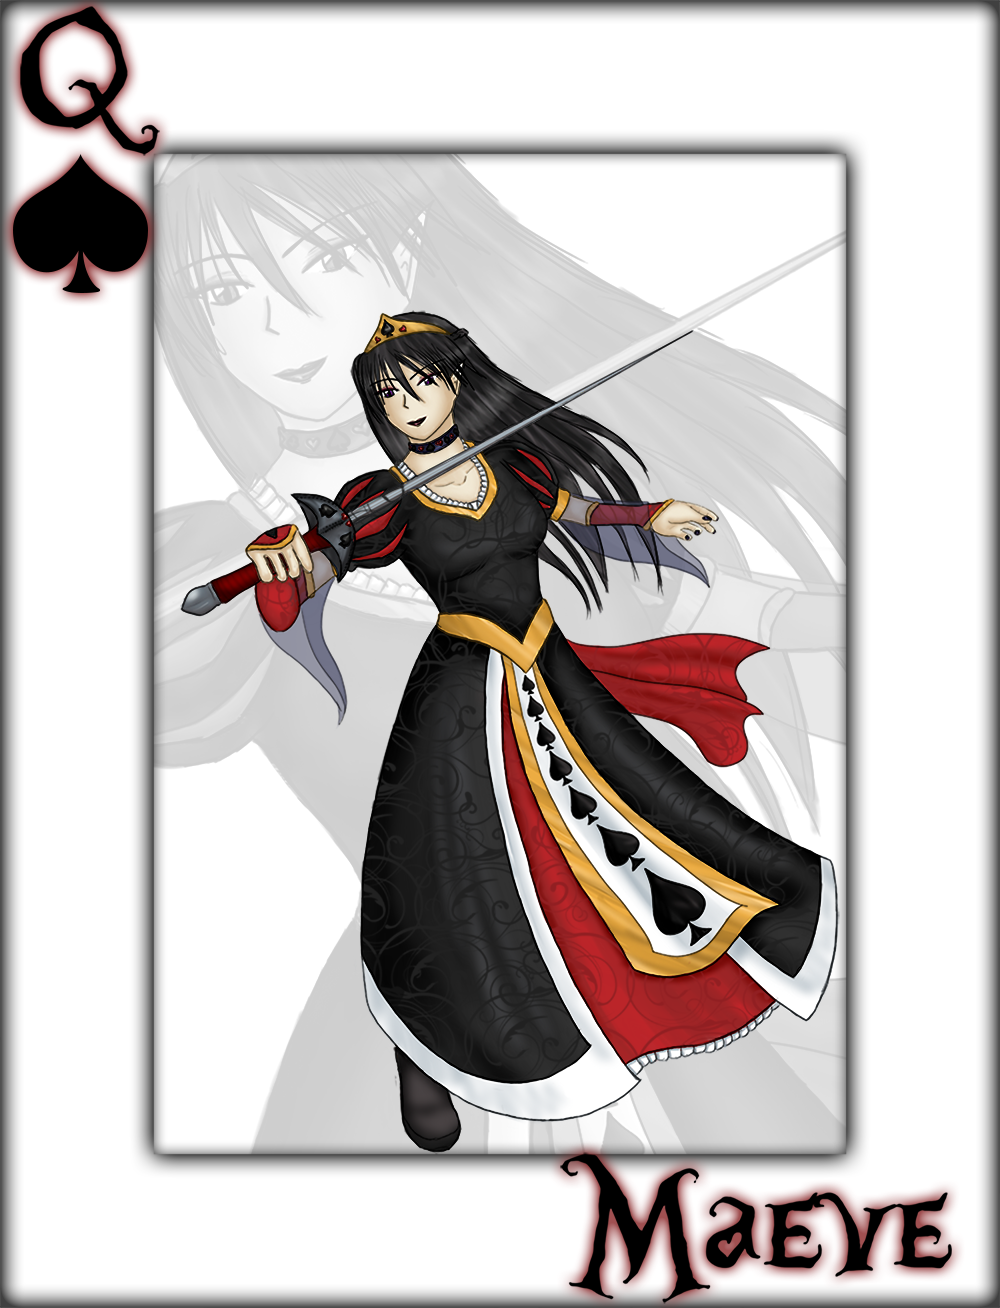 look__it_s_the_queen_of_spades__by_teira